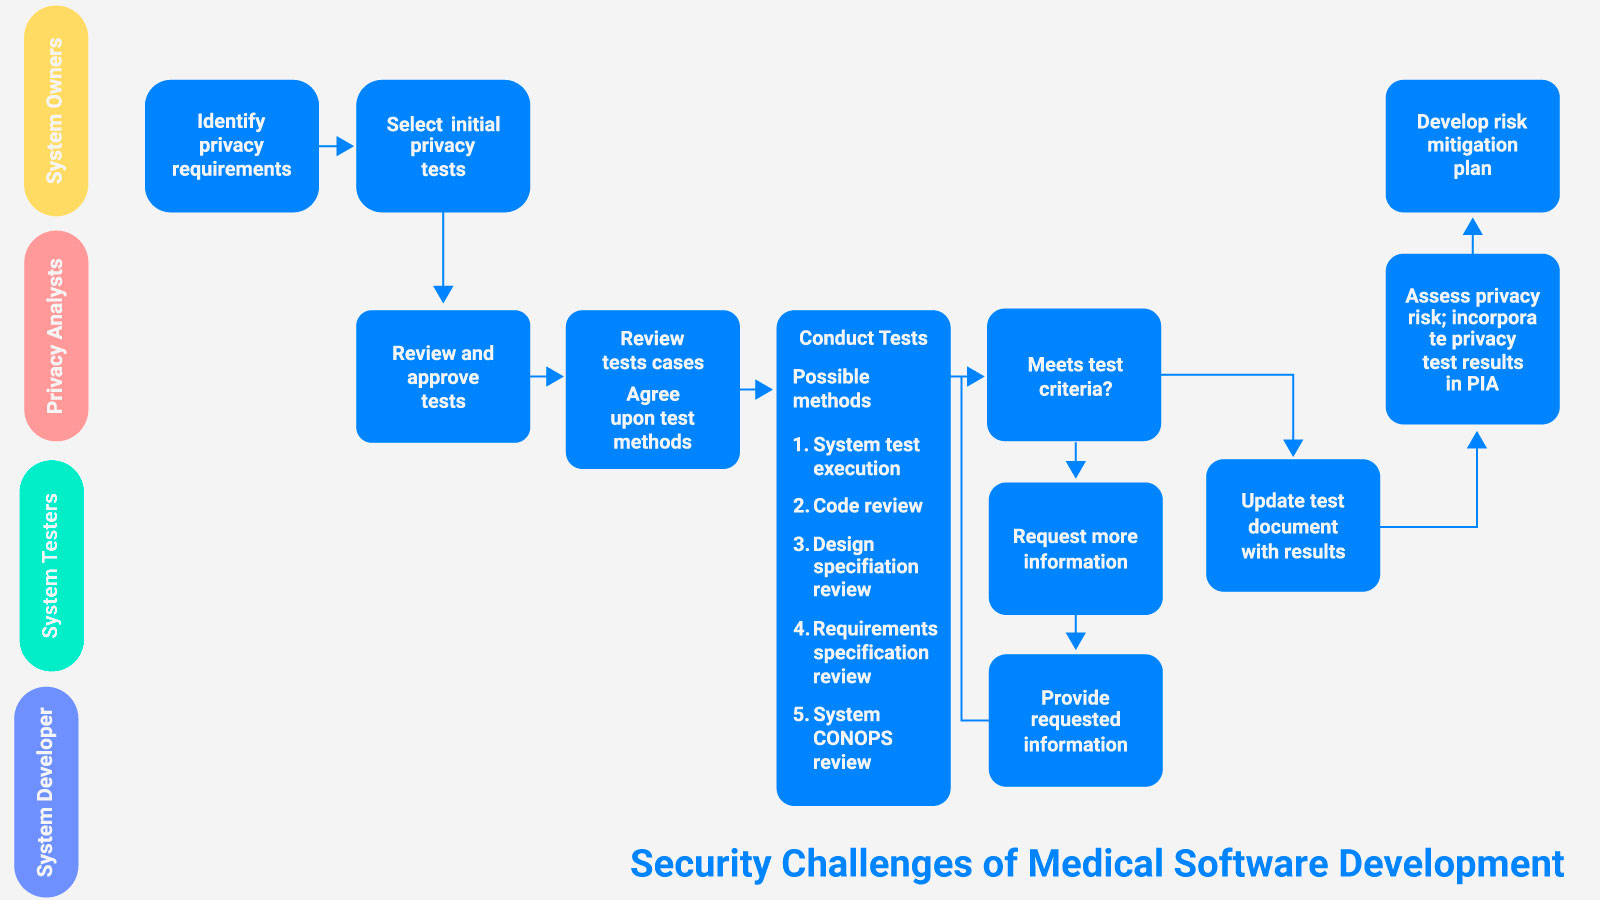 Security Challenges of Medical Software Development